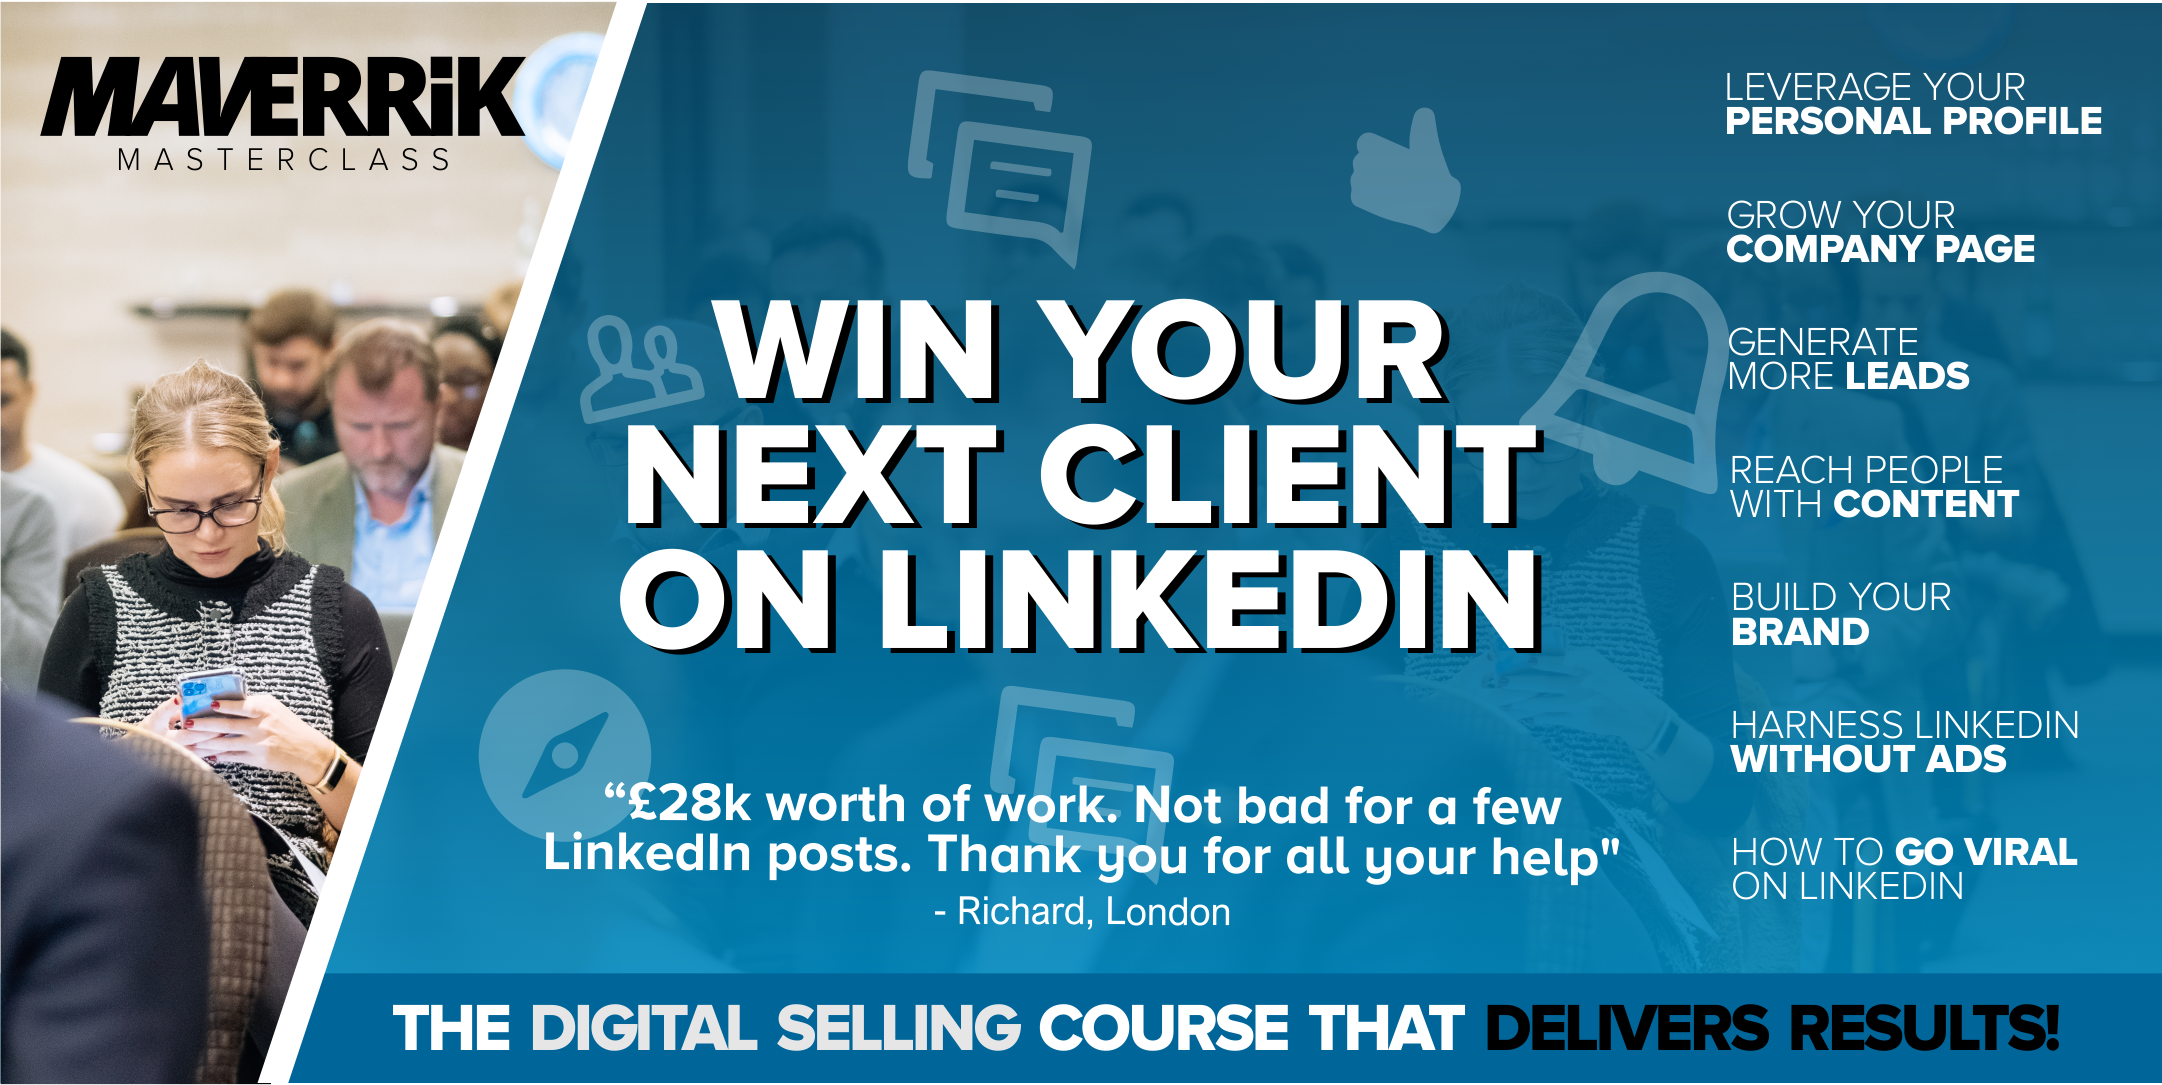 Win your next client on LinkedIn - GLASGOW - Grow your business on LinkedIn